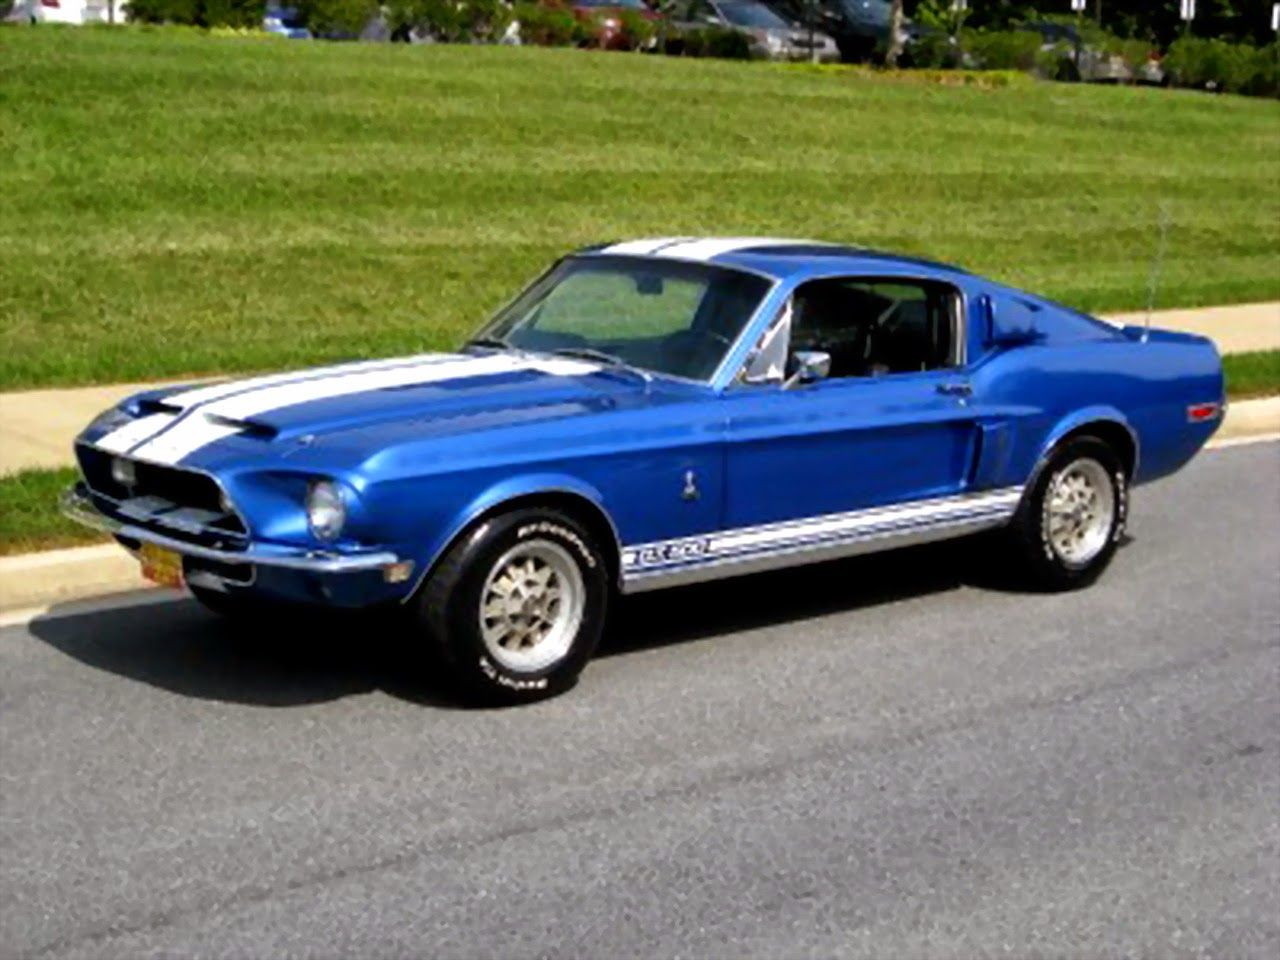 1968 shelby gt500kr mustang serial number tagthe collector car price tracker found six 1968 ford mustang shelby gt500 kr fastbacks and cabriolets 2005 2012